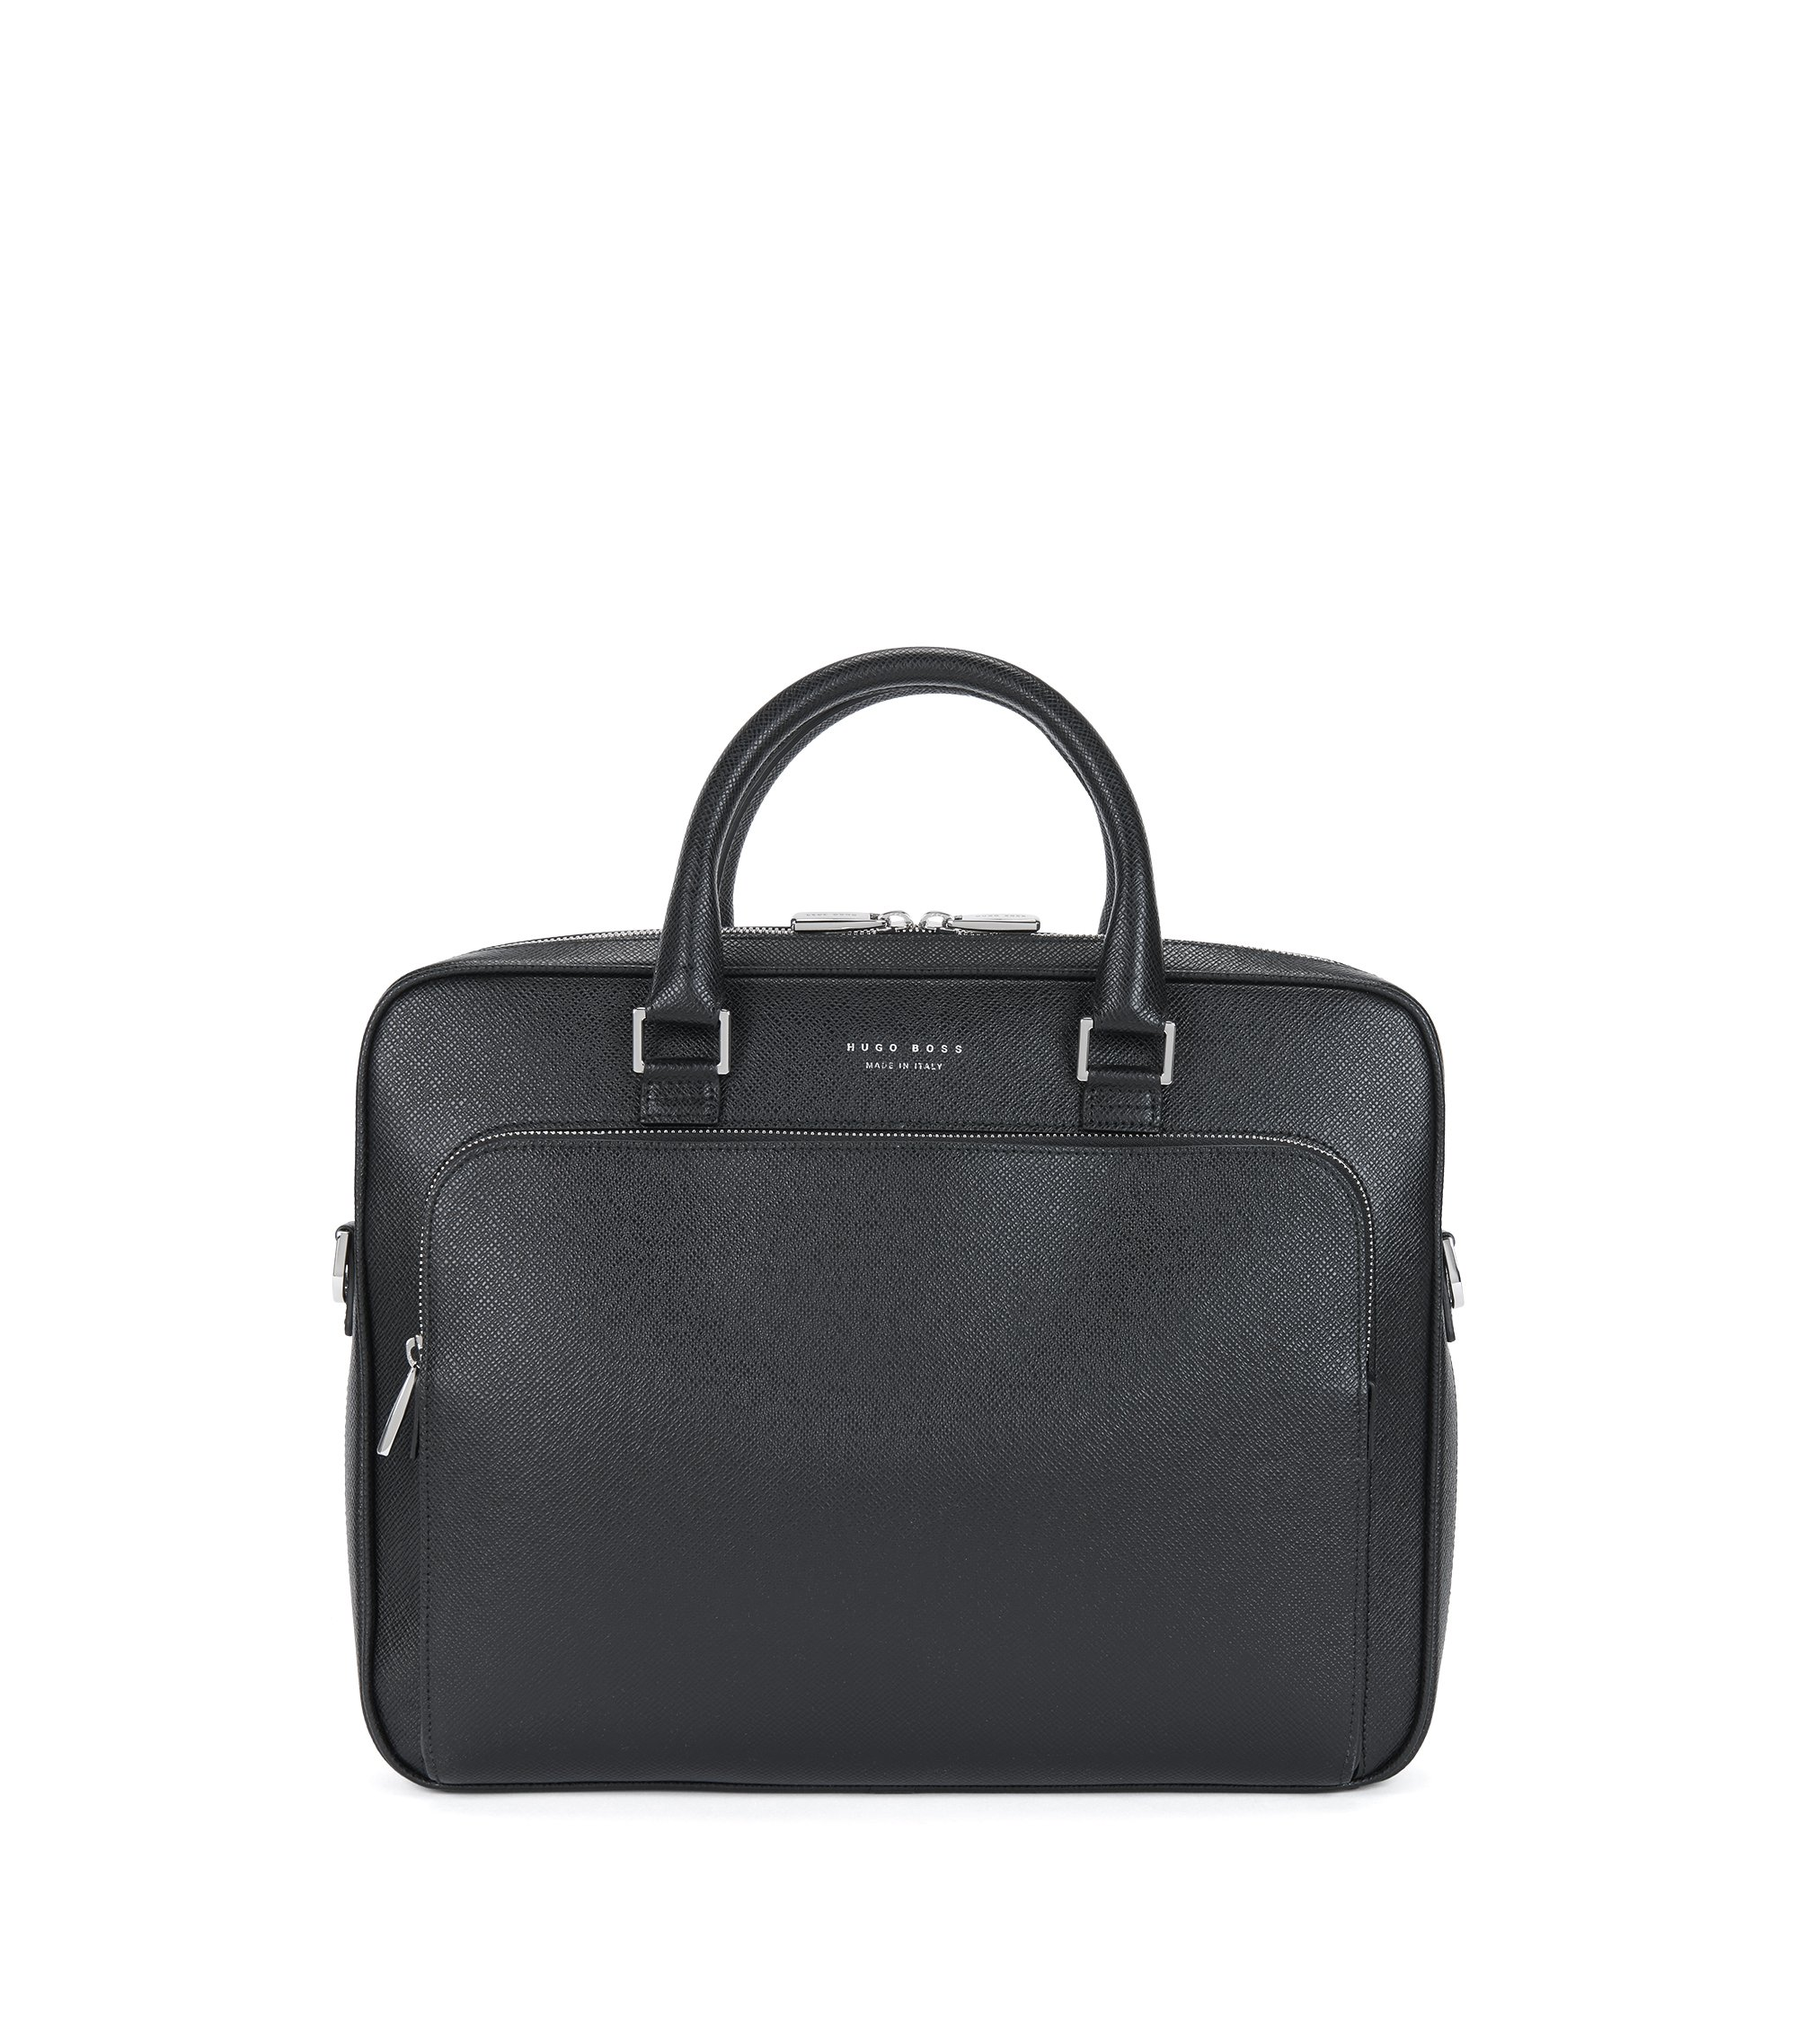 Porte-document BOSS de la collection Signature en cuir palmellato, Noir